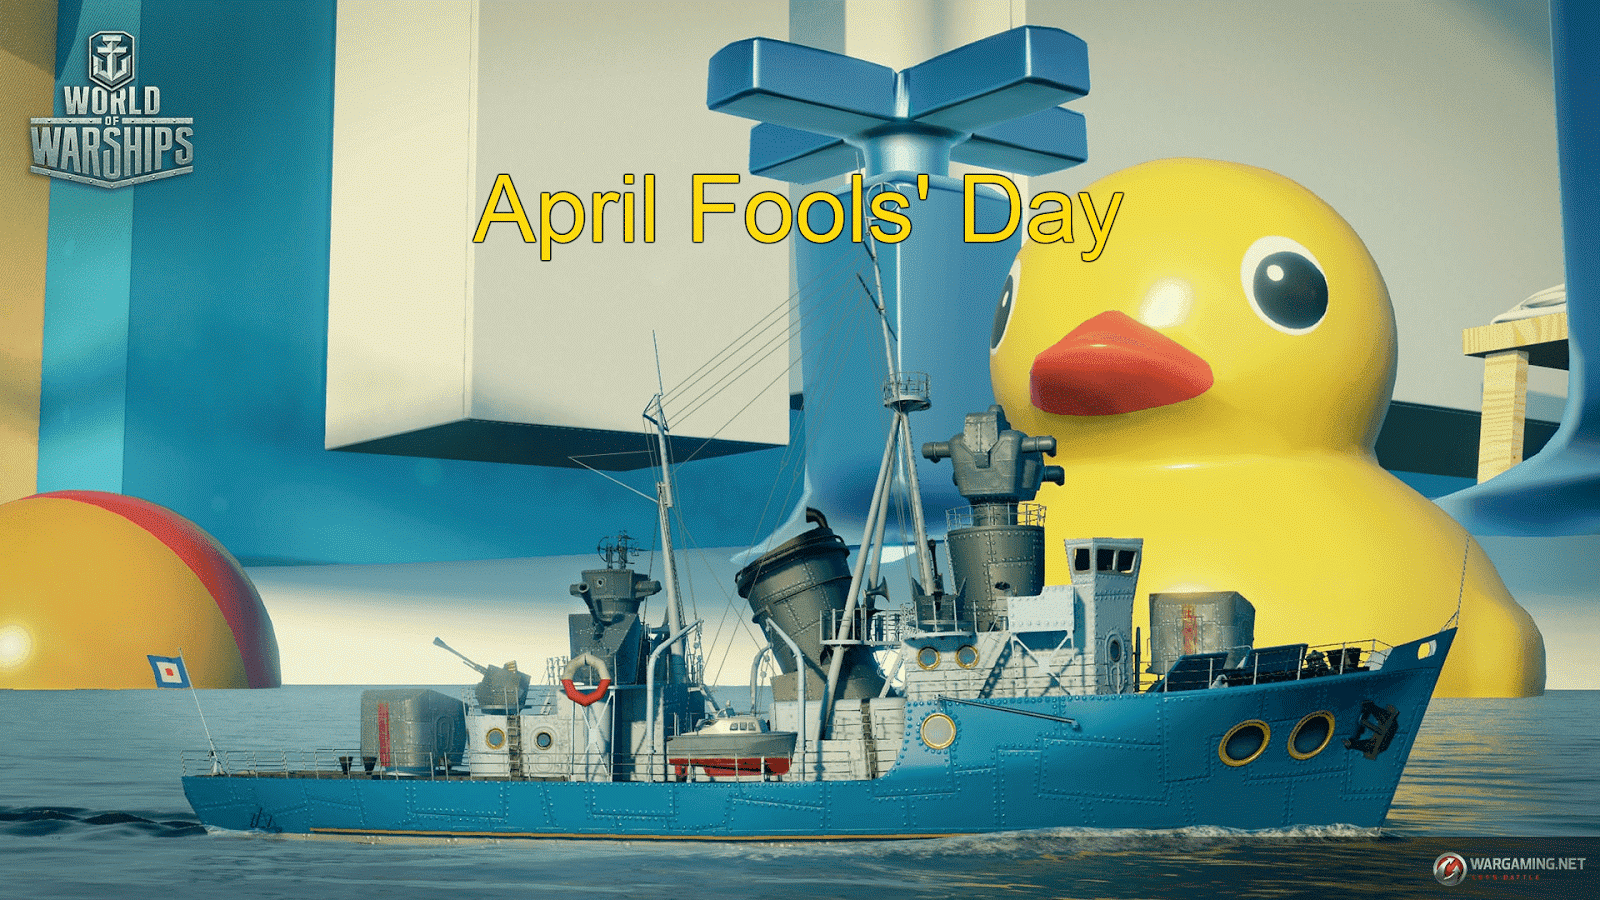 April Fools' Day in Online Games